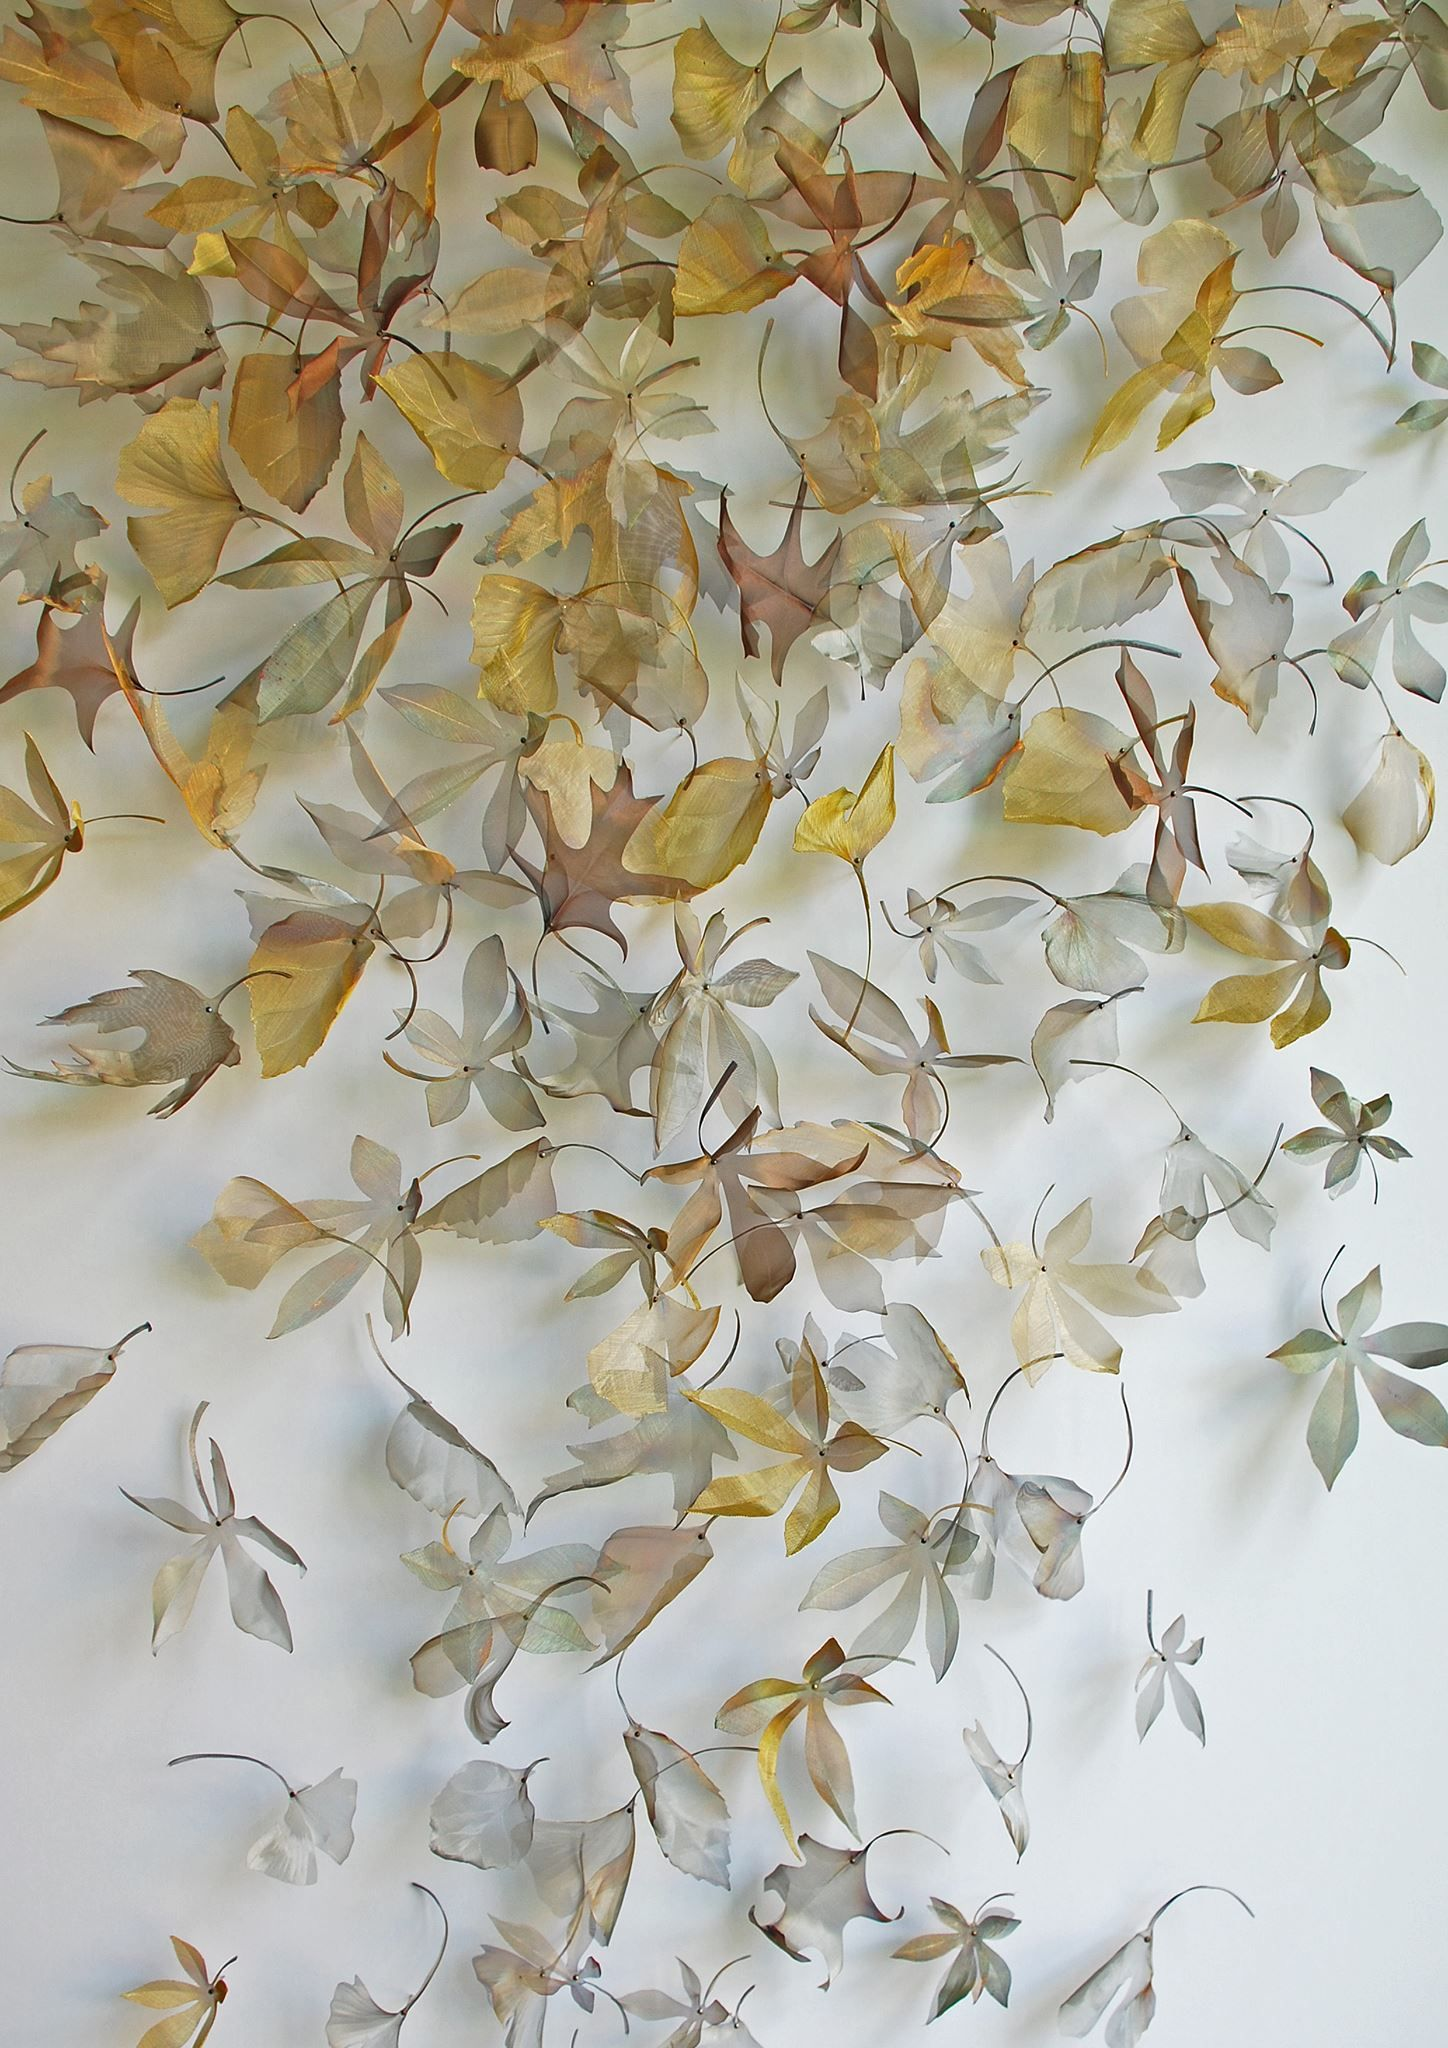 Ethereal Woven Metal Leaf and Seed Installations by Michelle Mckinney wire  sculpture multiples metal leaves installation